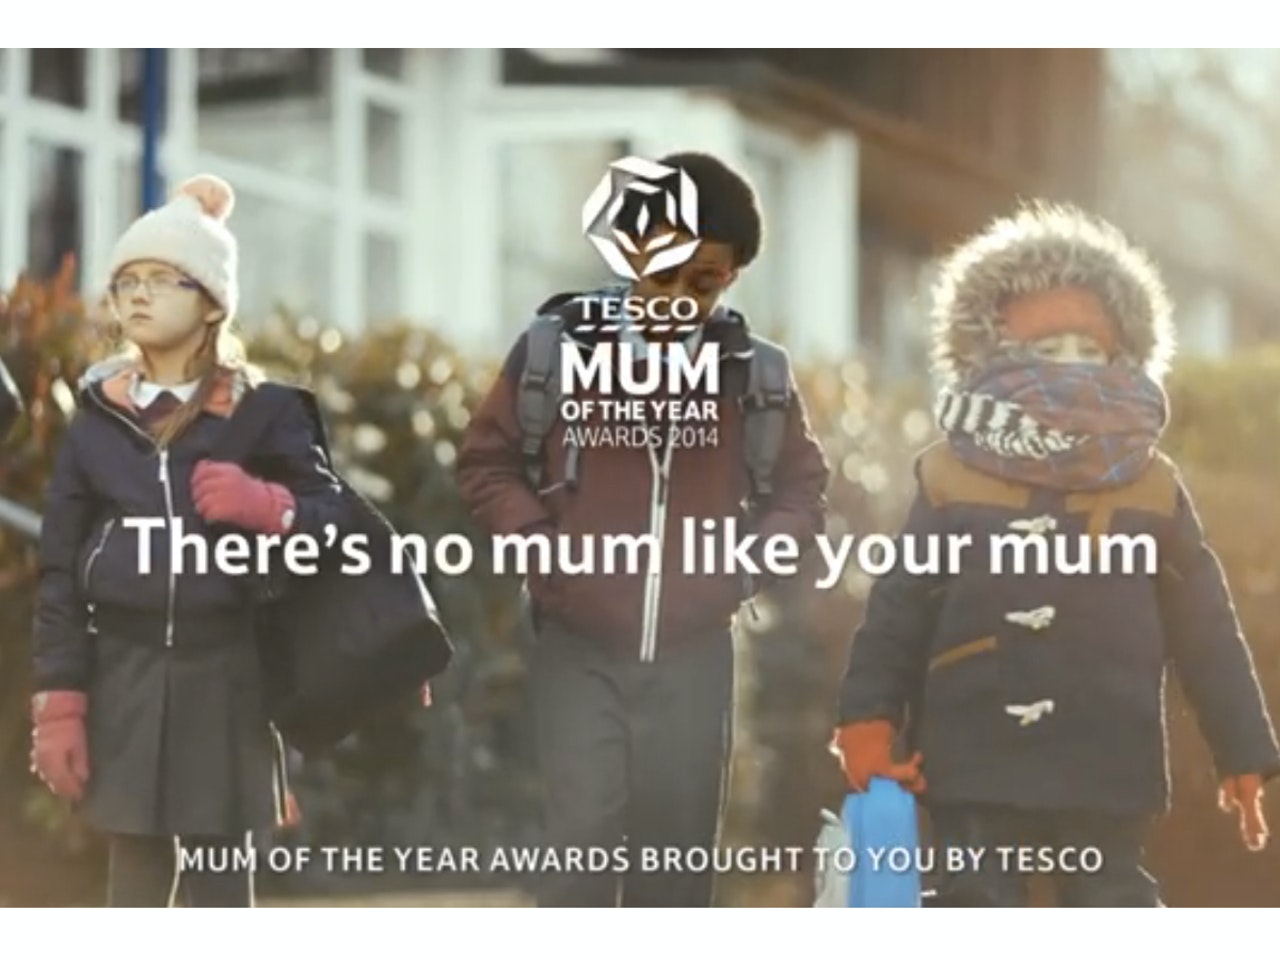 TESCO - MUM OF THE YEAR